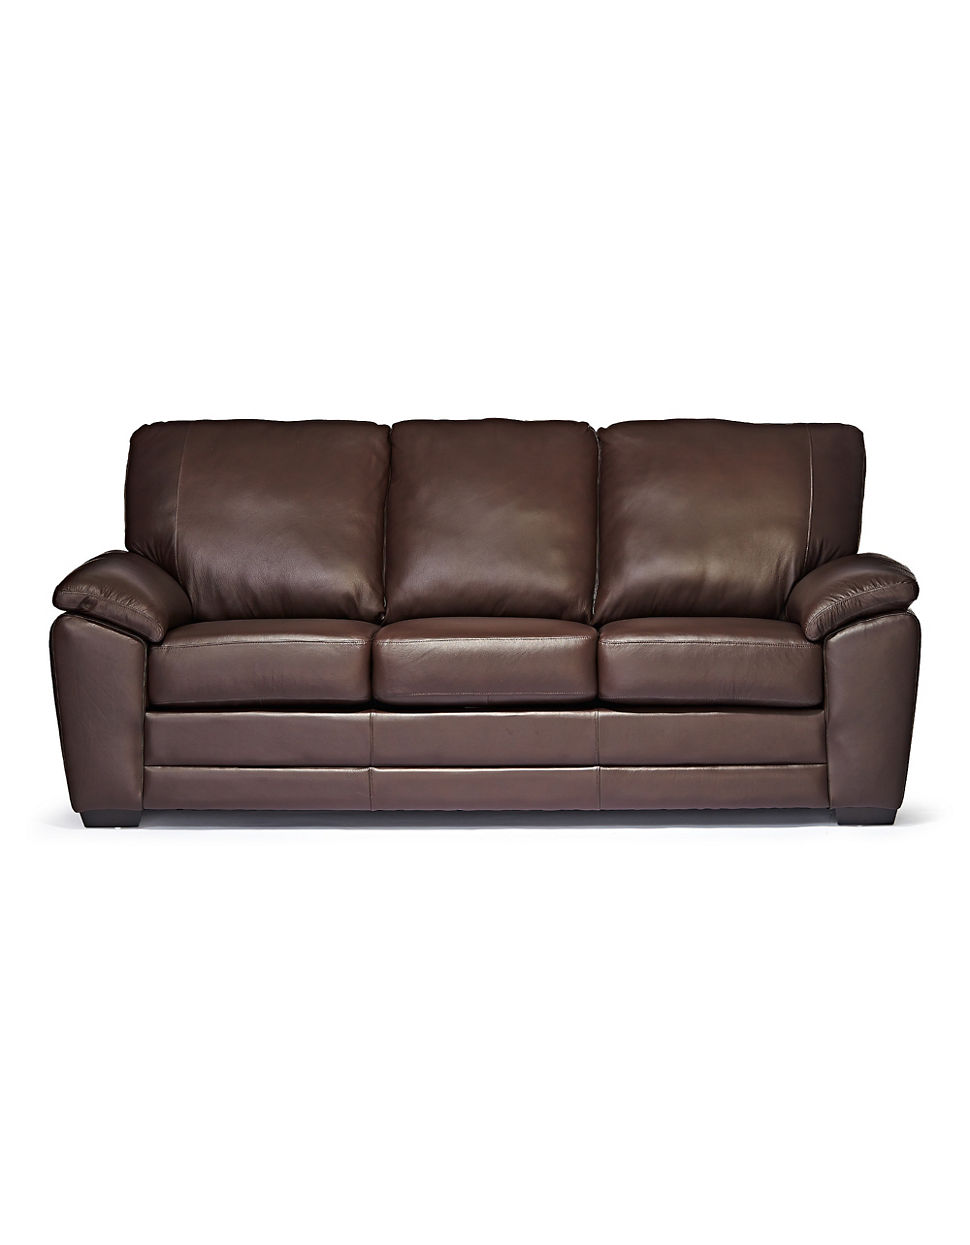 Cheap sofa online canada sofa menzilperde net for Cheap home furniture canada